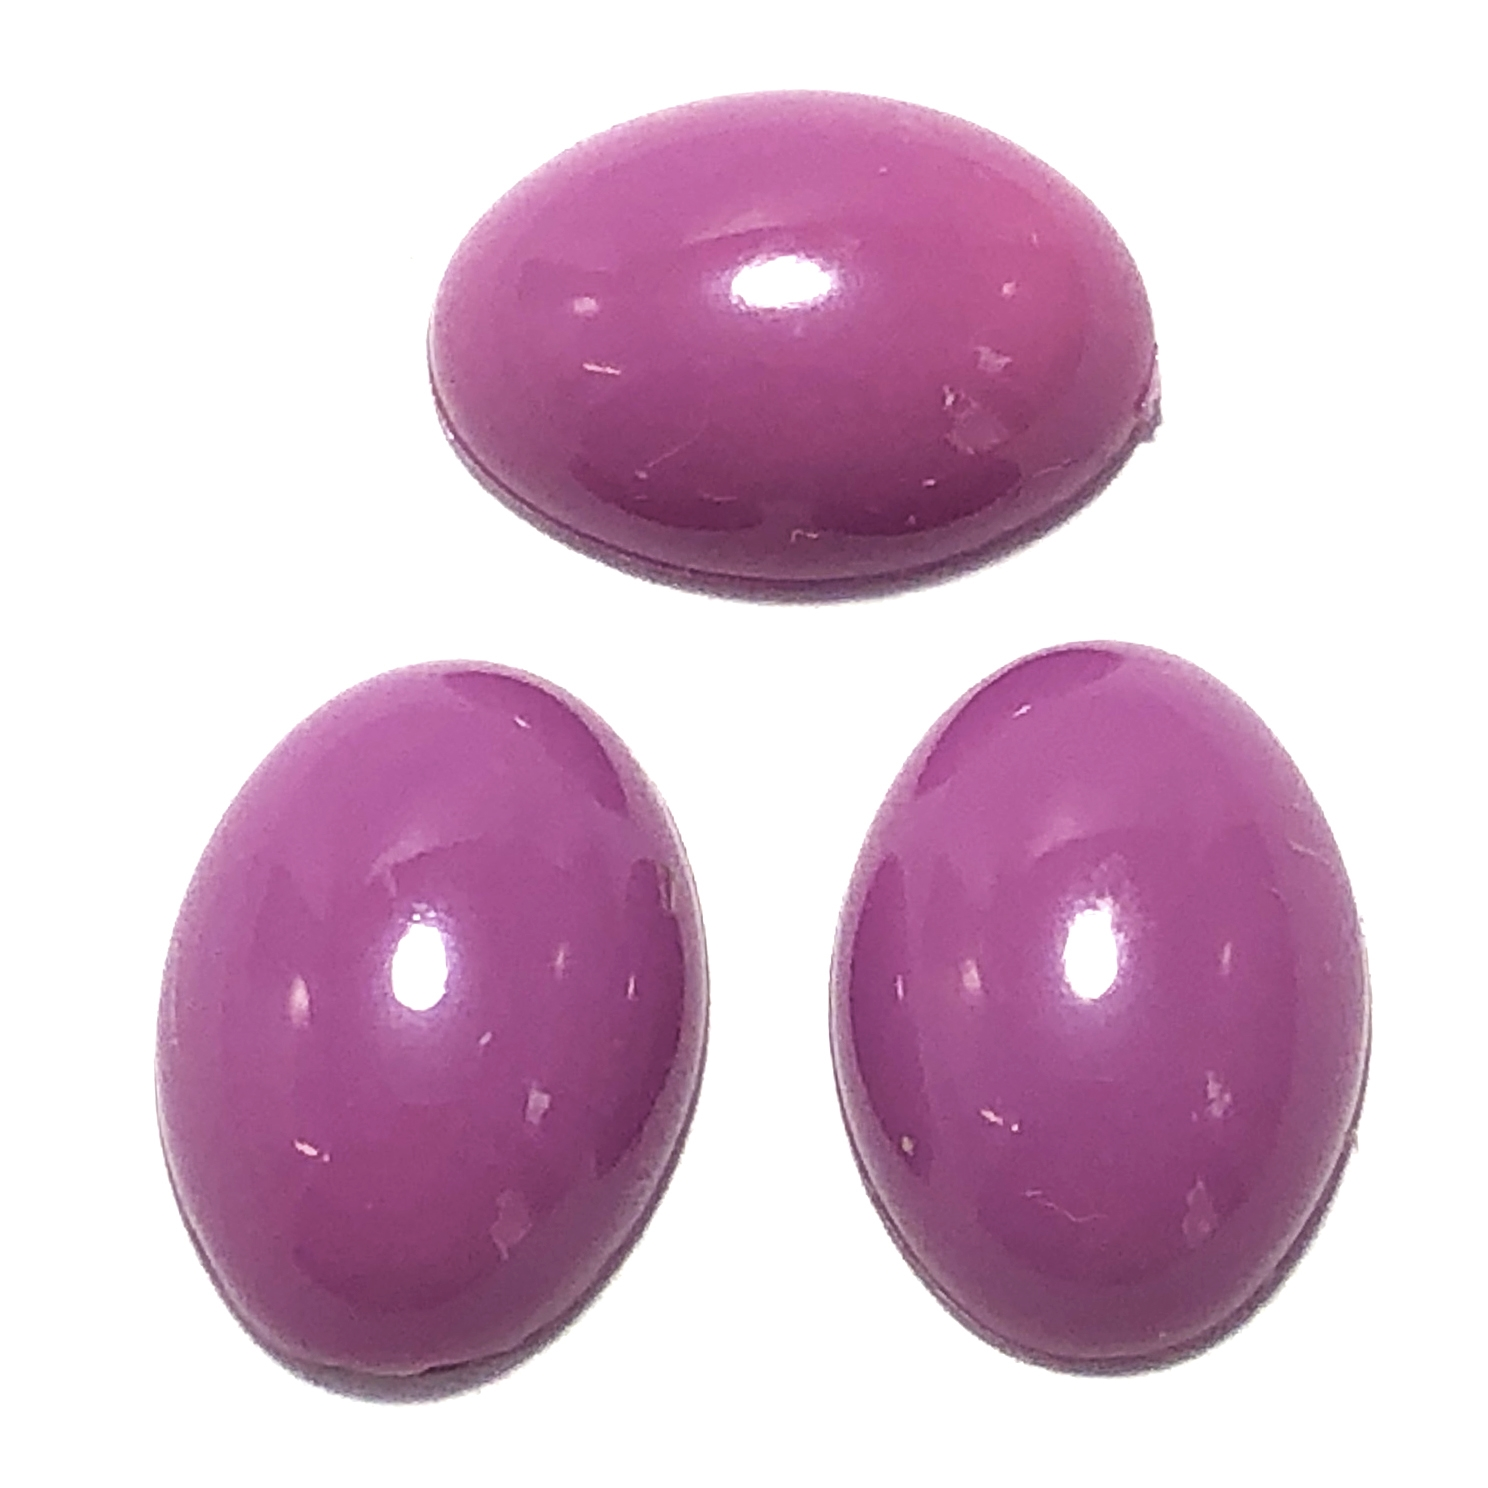 oval acrylic cabochon, plum, 0815, flat back stones, 18 x 13mm stones,  vintage jewelry supplies, B'sue Boutiques, plastic cabochons, cabochons, jewelry making supplies, vintage jewelry supplies, purple stone, purple cabochon